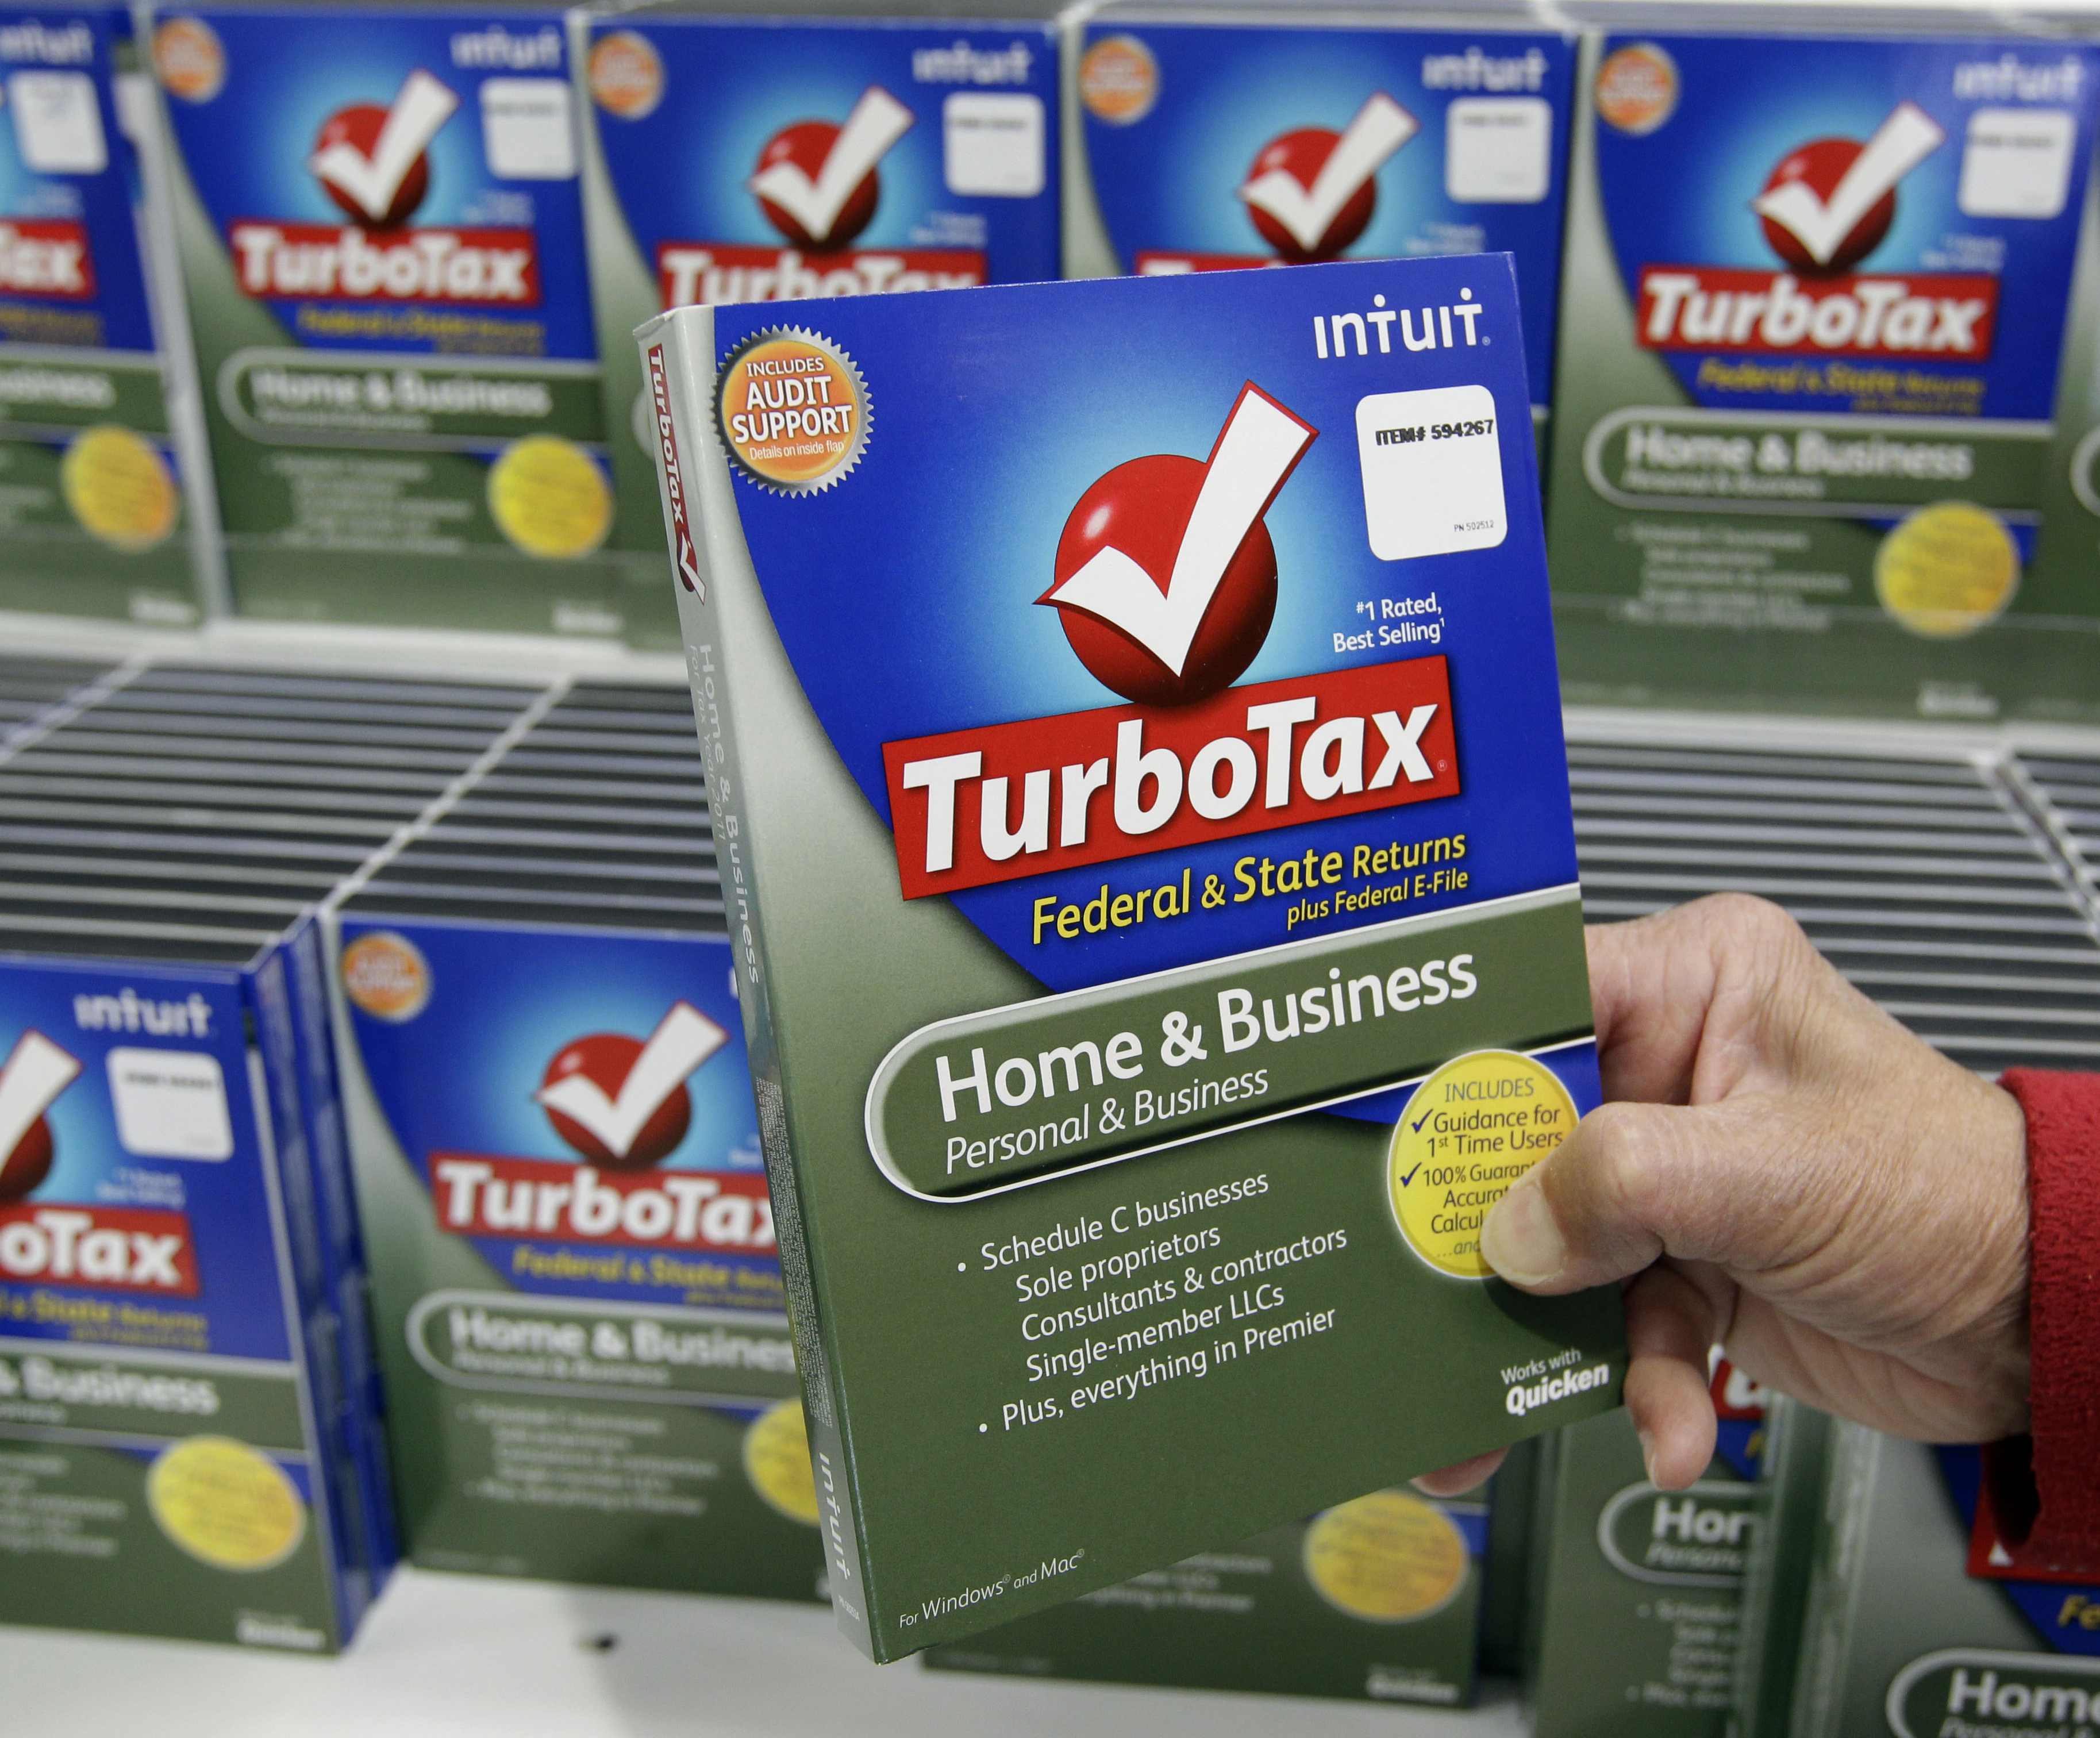 Trump's tax law threatened TurboTax profits  So the company